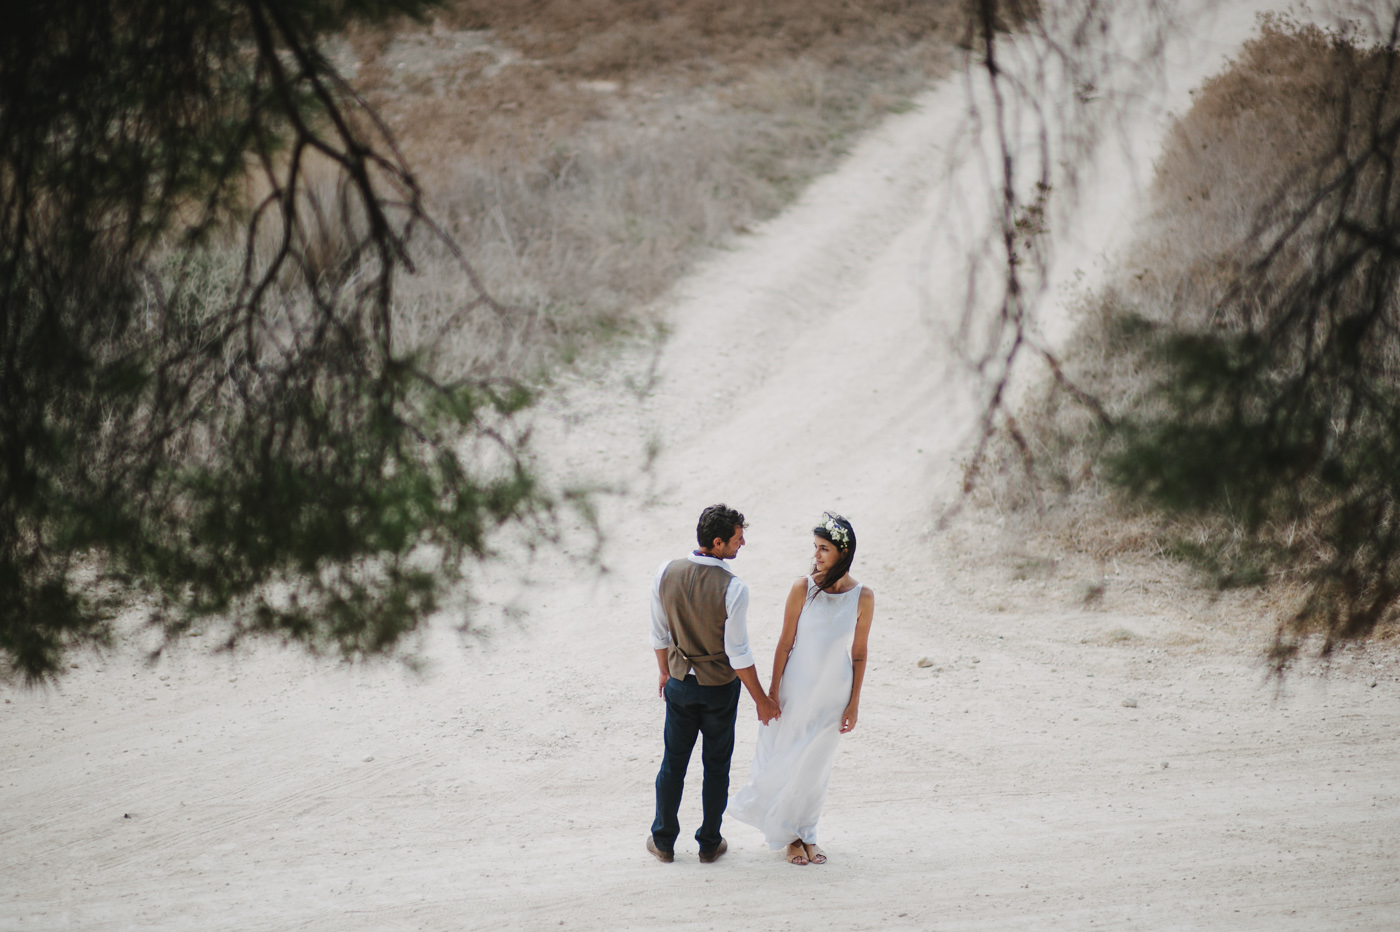 bride and groom standing in dirt road crossing